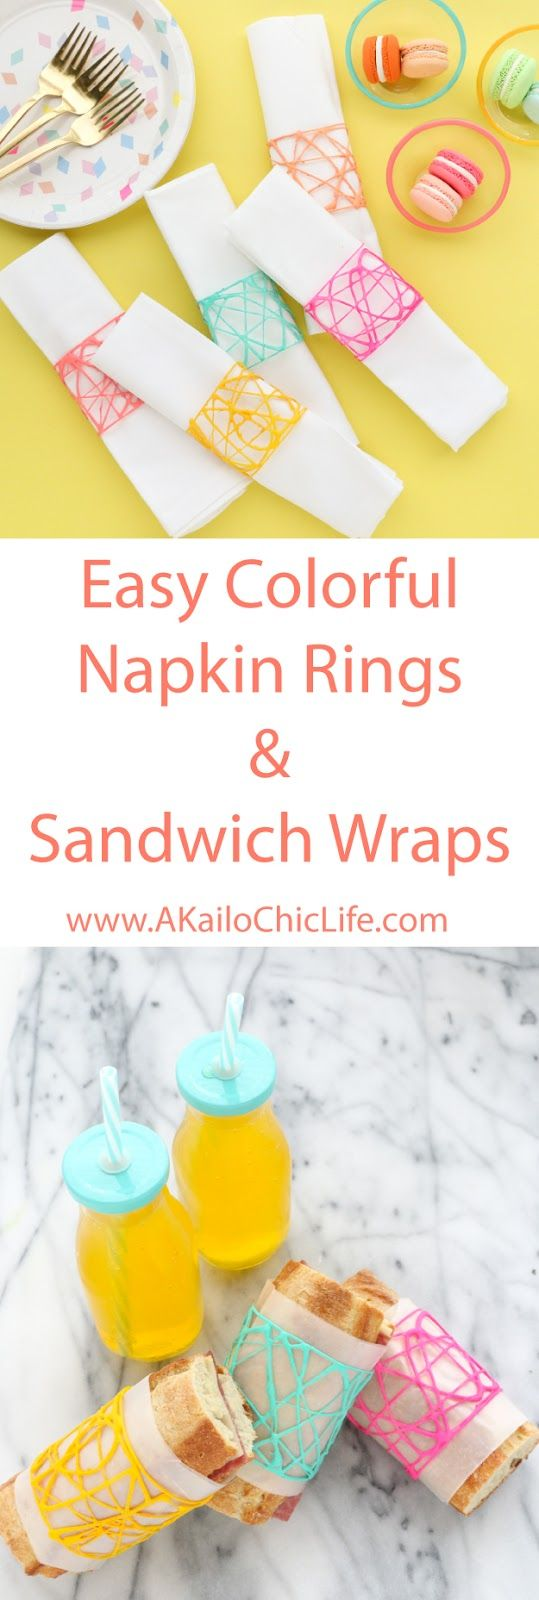 Craft It - Cross Hatch Napkin Rings and Sandwich Wraps